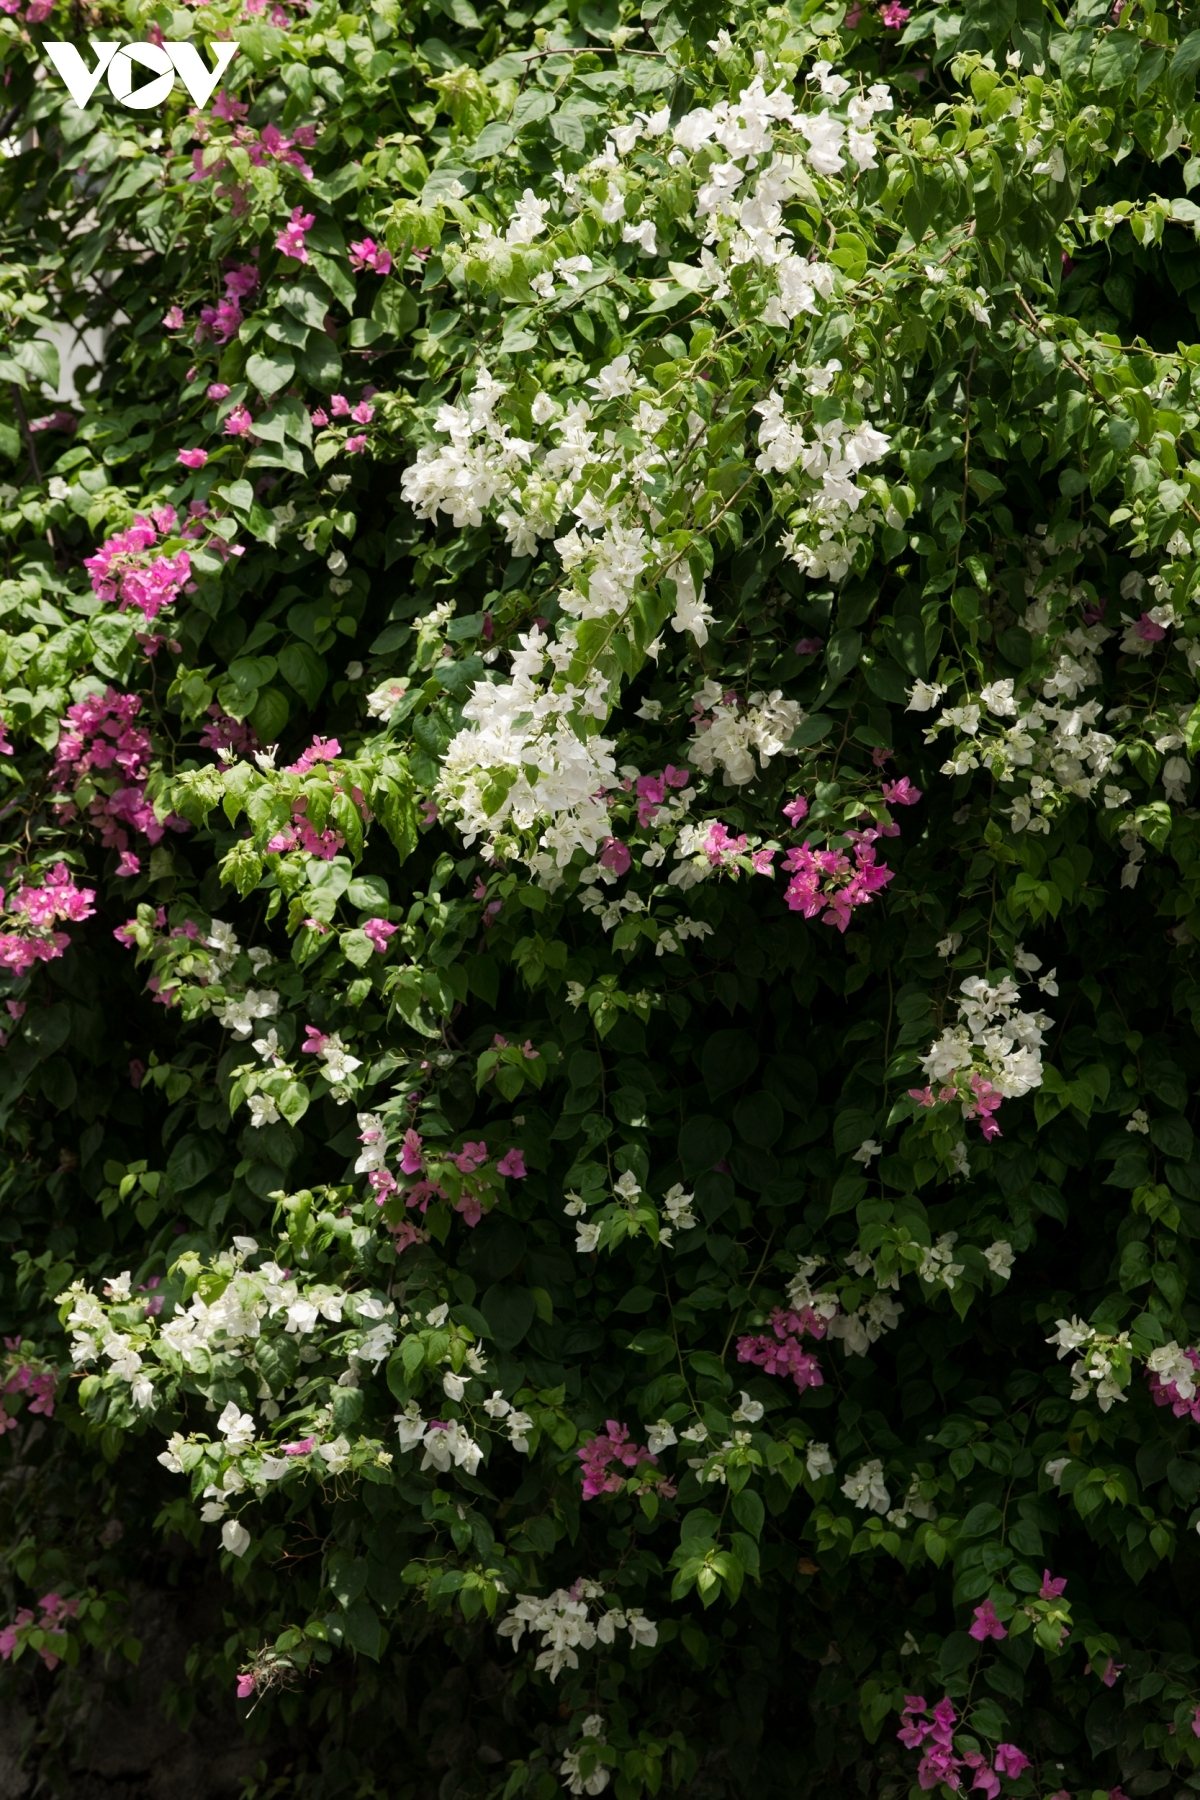 The sight of the flowers helps to create a peaceful and fresh atmosphere.